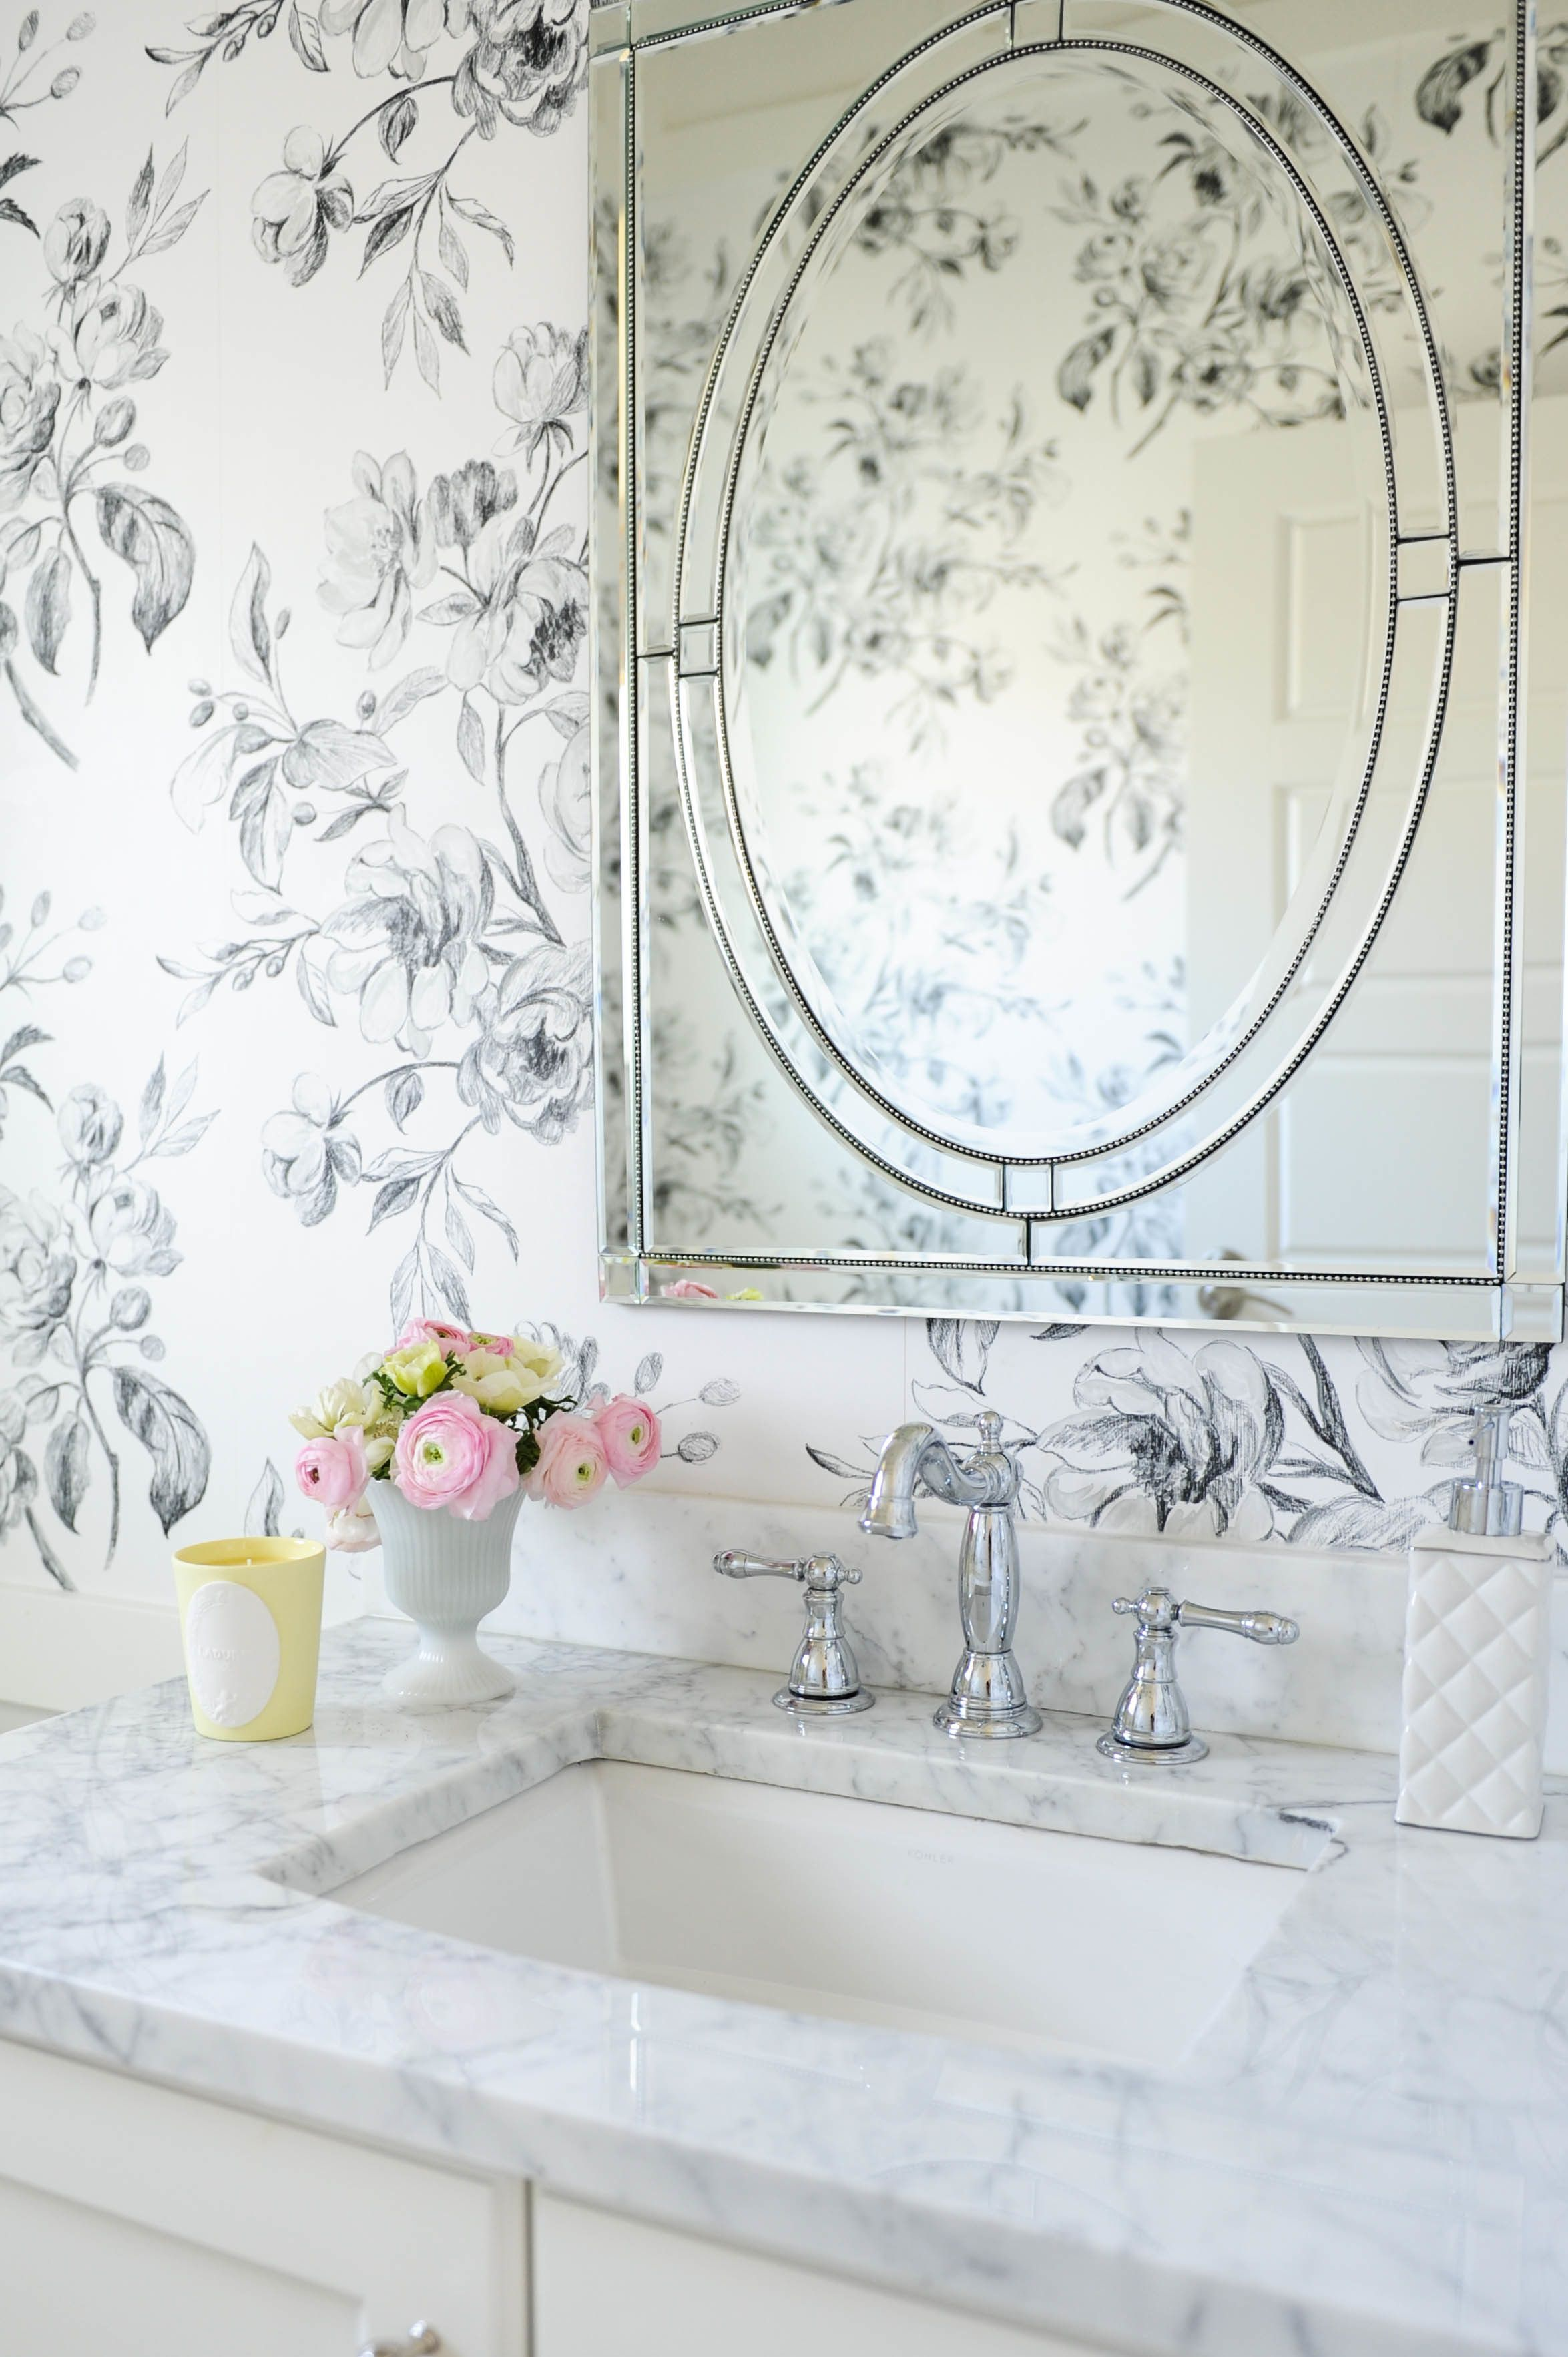 36 of the Prettiest Bathrooms of All Time | Marble wall, Countertop ...